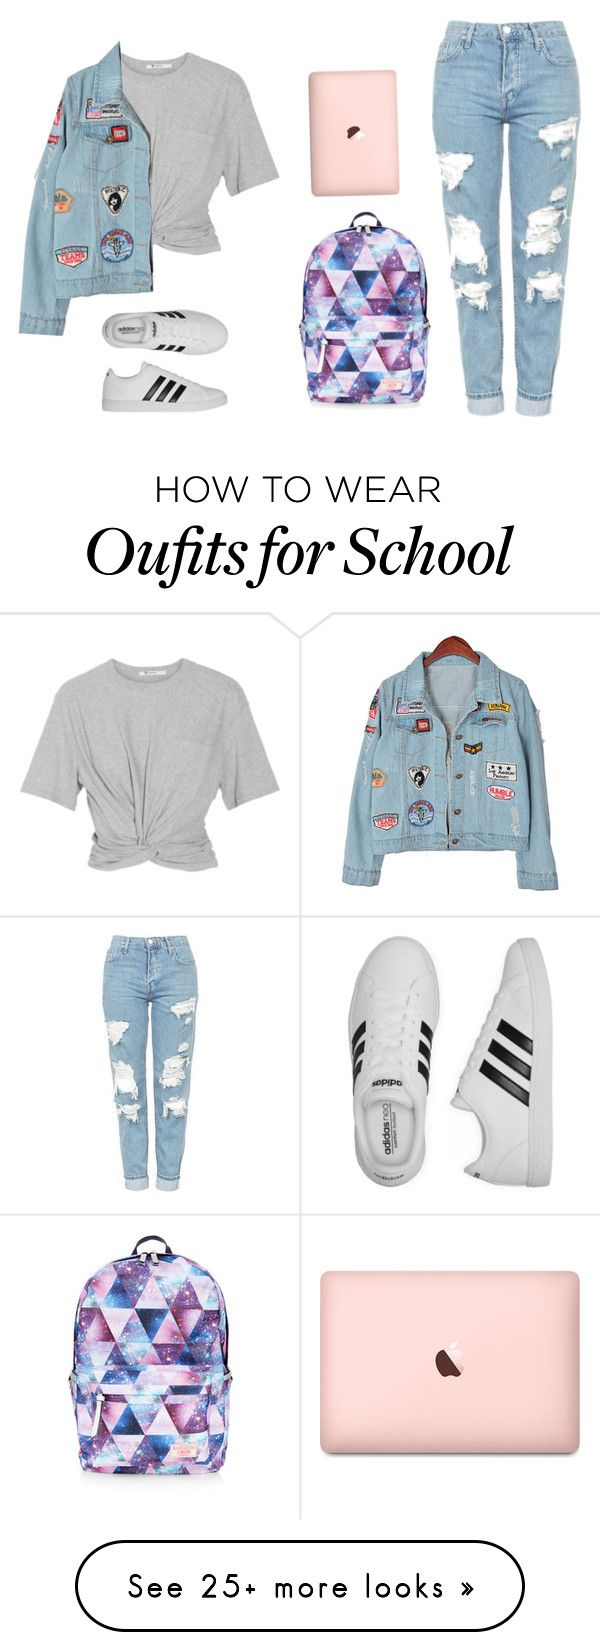 """Back to school nearly but cool"" by nuria-f on Polyvore featuring Accessorize, T By Alexander Wang, Topshop, Chicnova Fashion and adidas"